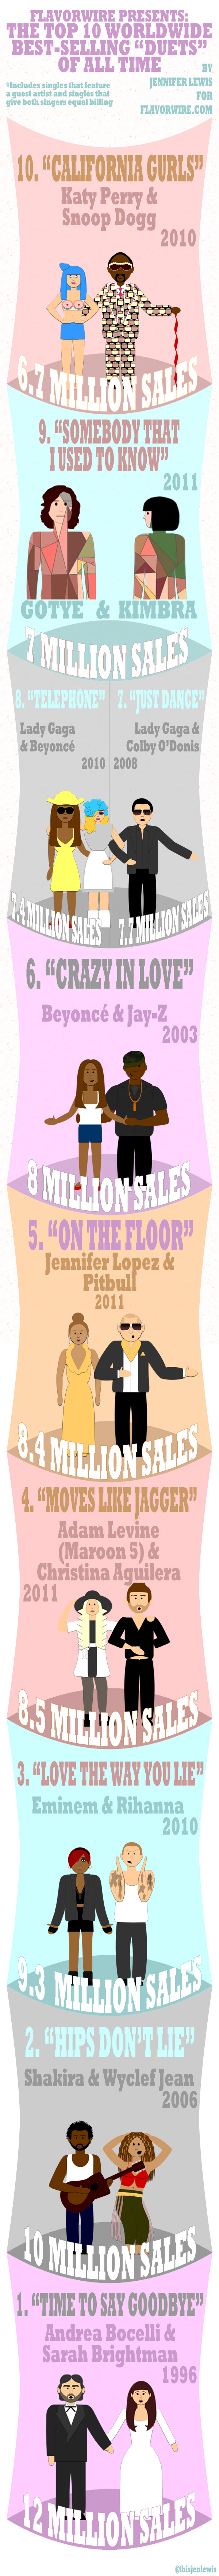 The-Top-10-Best-Selling-Duets-infographic